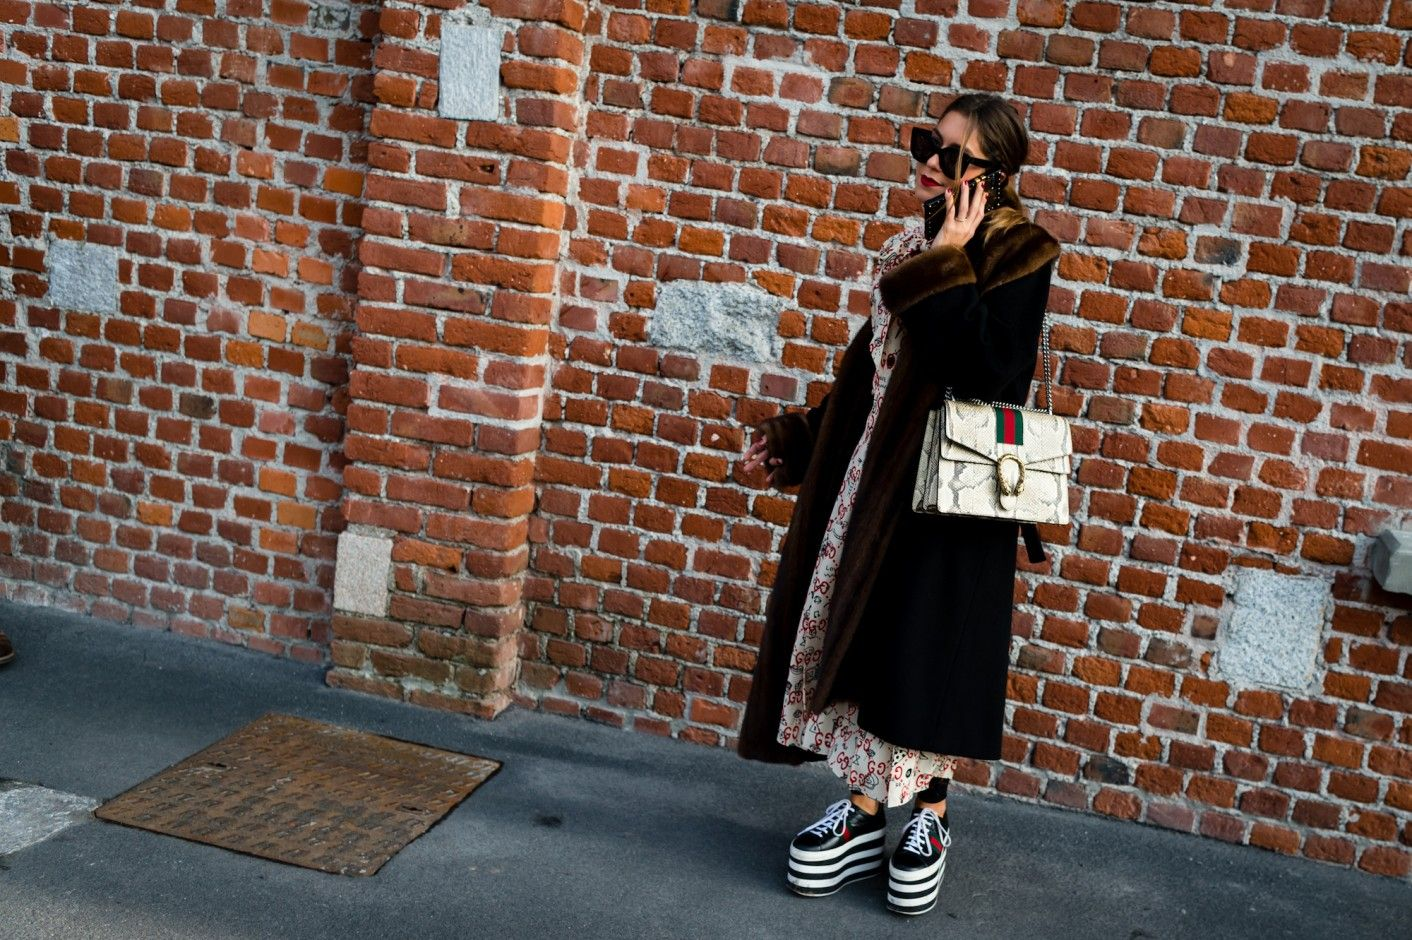 Street Style Photos From Fall 2017 Milan Fashion Week: As such, it follows that Milanese street style would be next-level eccentric and totally inspiring and fantastic. Daniel Kim of Walking Canucks is our man on the ground capturing all the very best of the best of Milan Fashion Week street style. ----- Brown fur jacket, black platform shoes and Gucci purse.     Coveteur.com